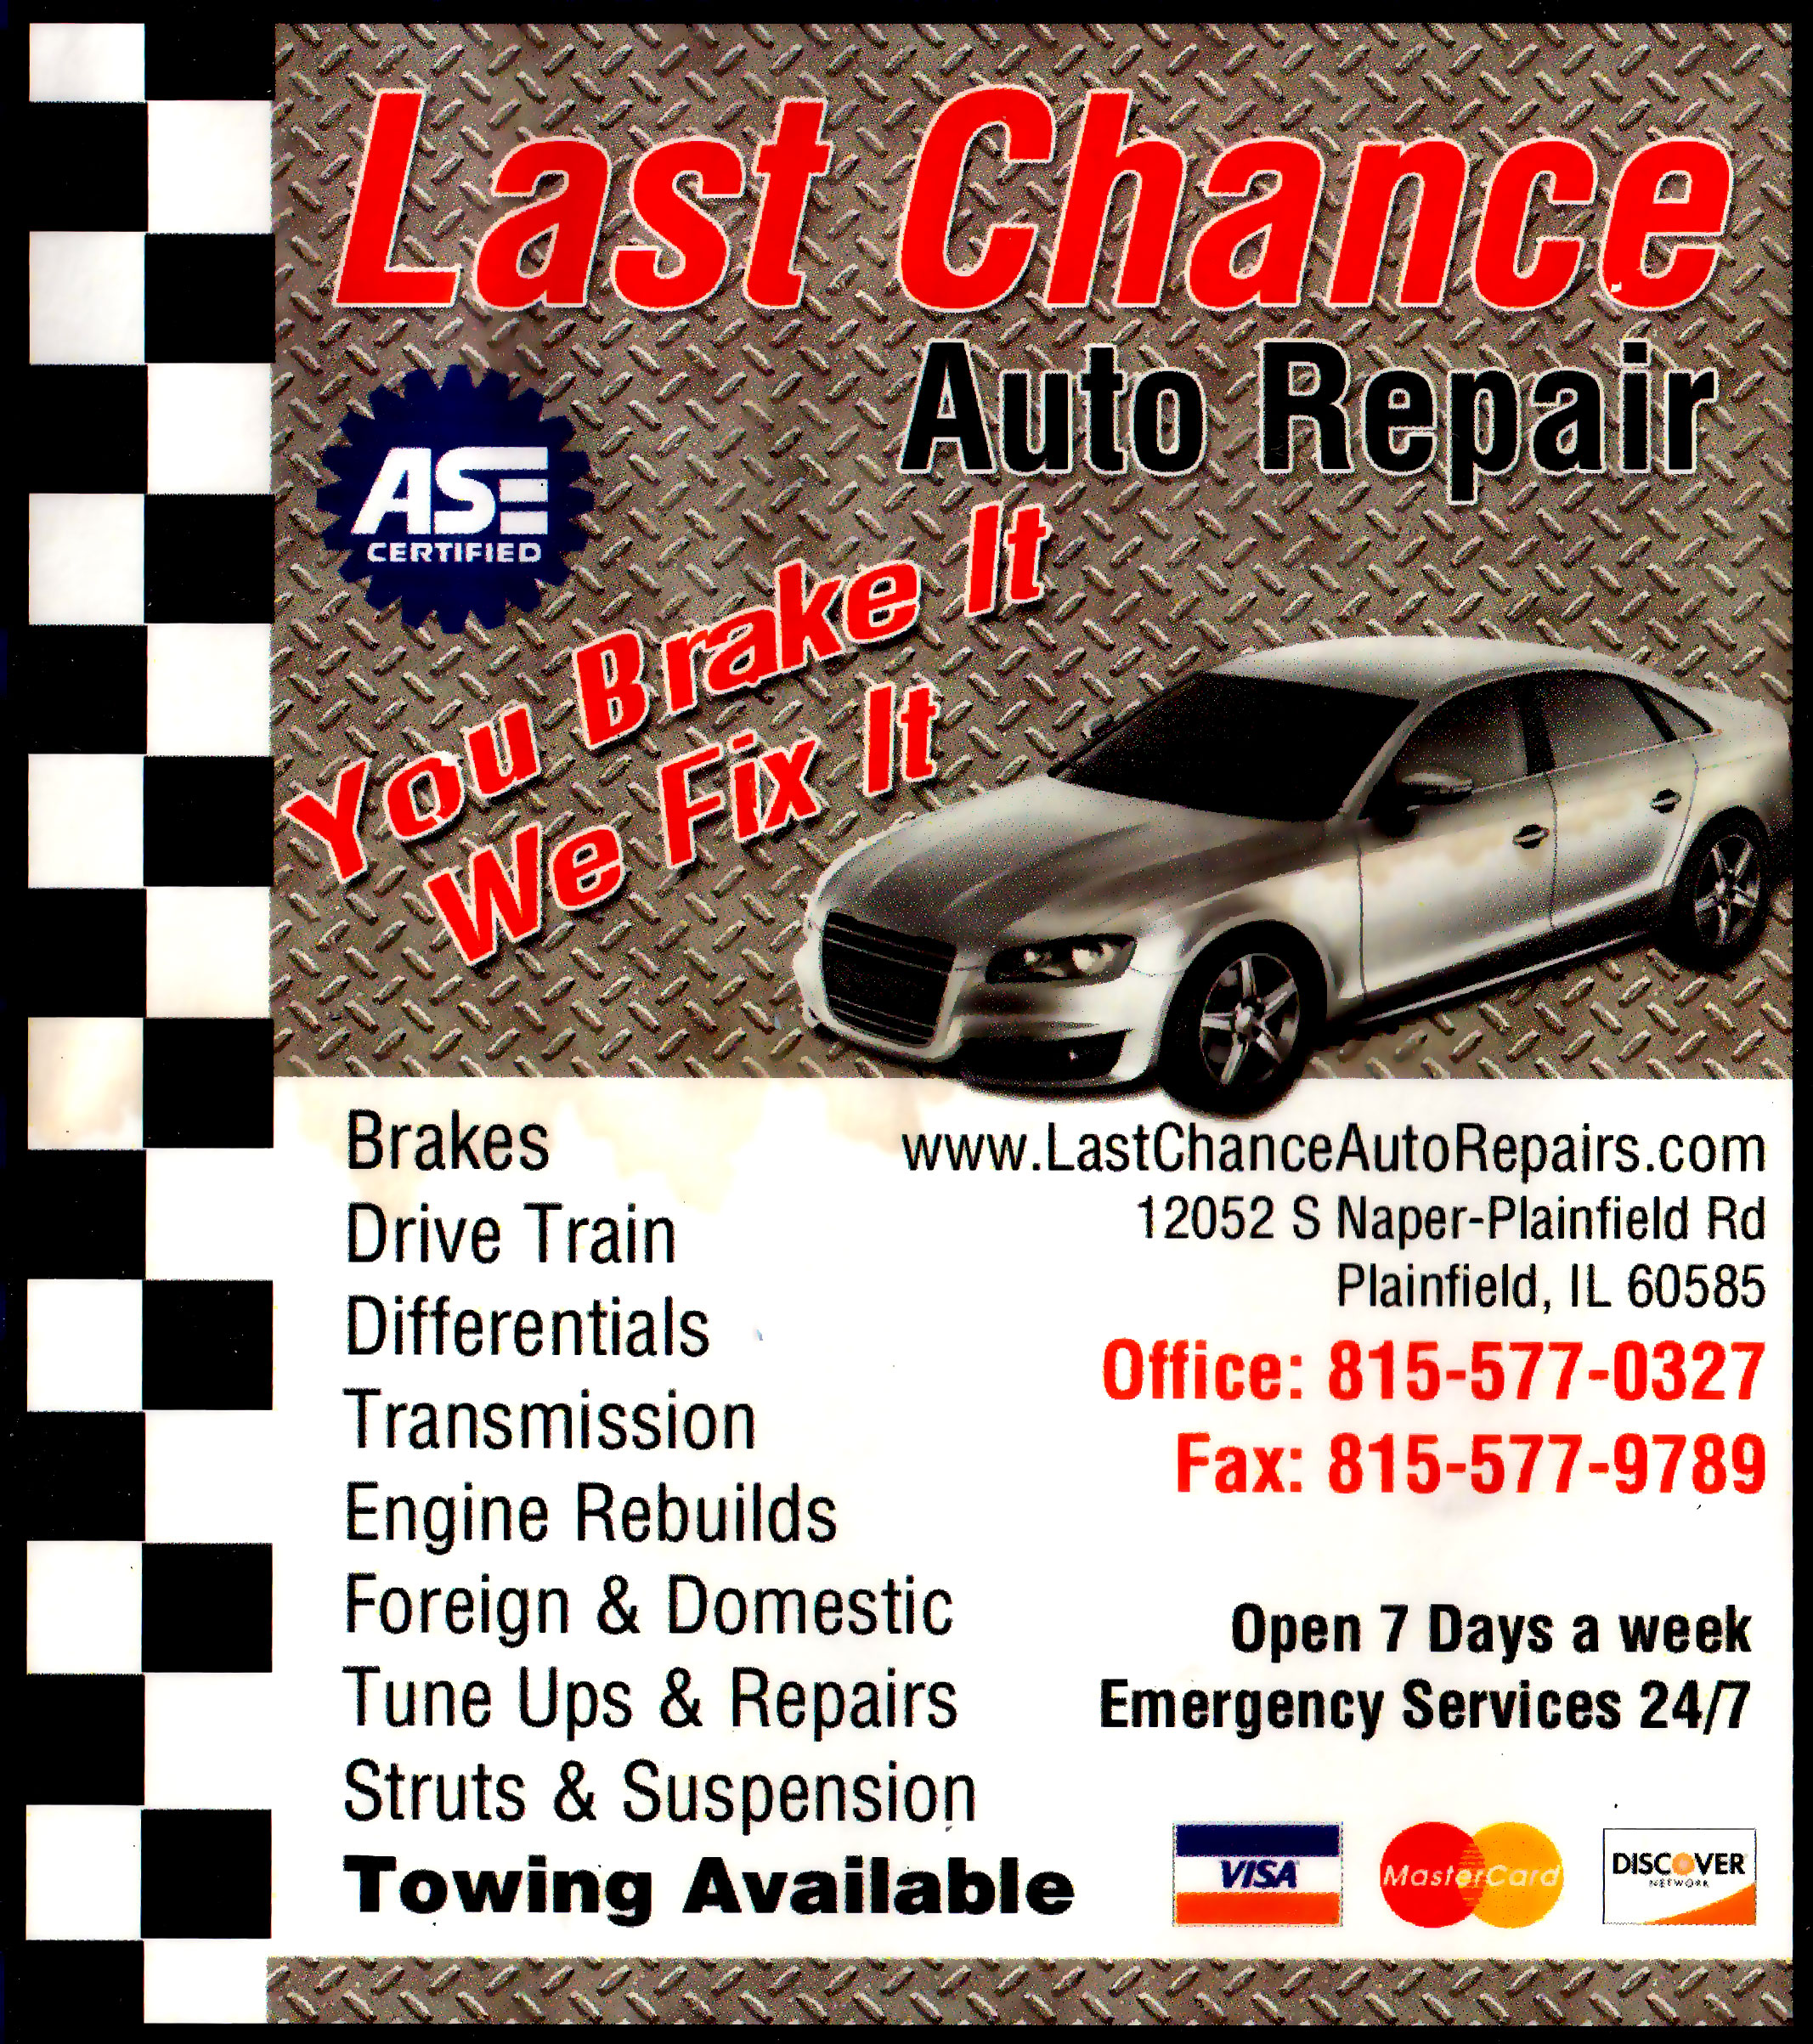 Automotive-Repair-Bolingbrook-IL